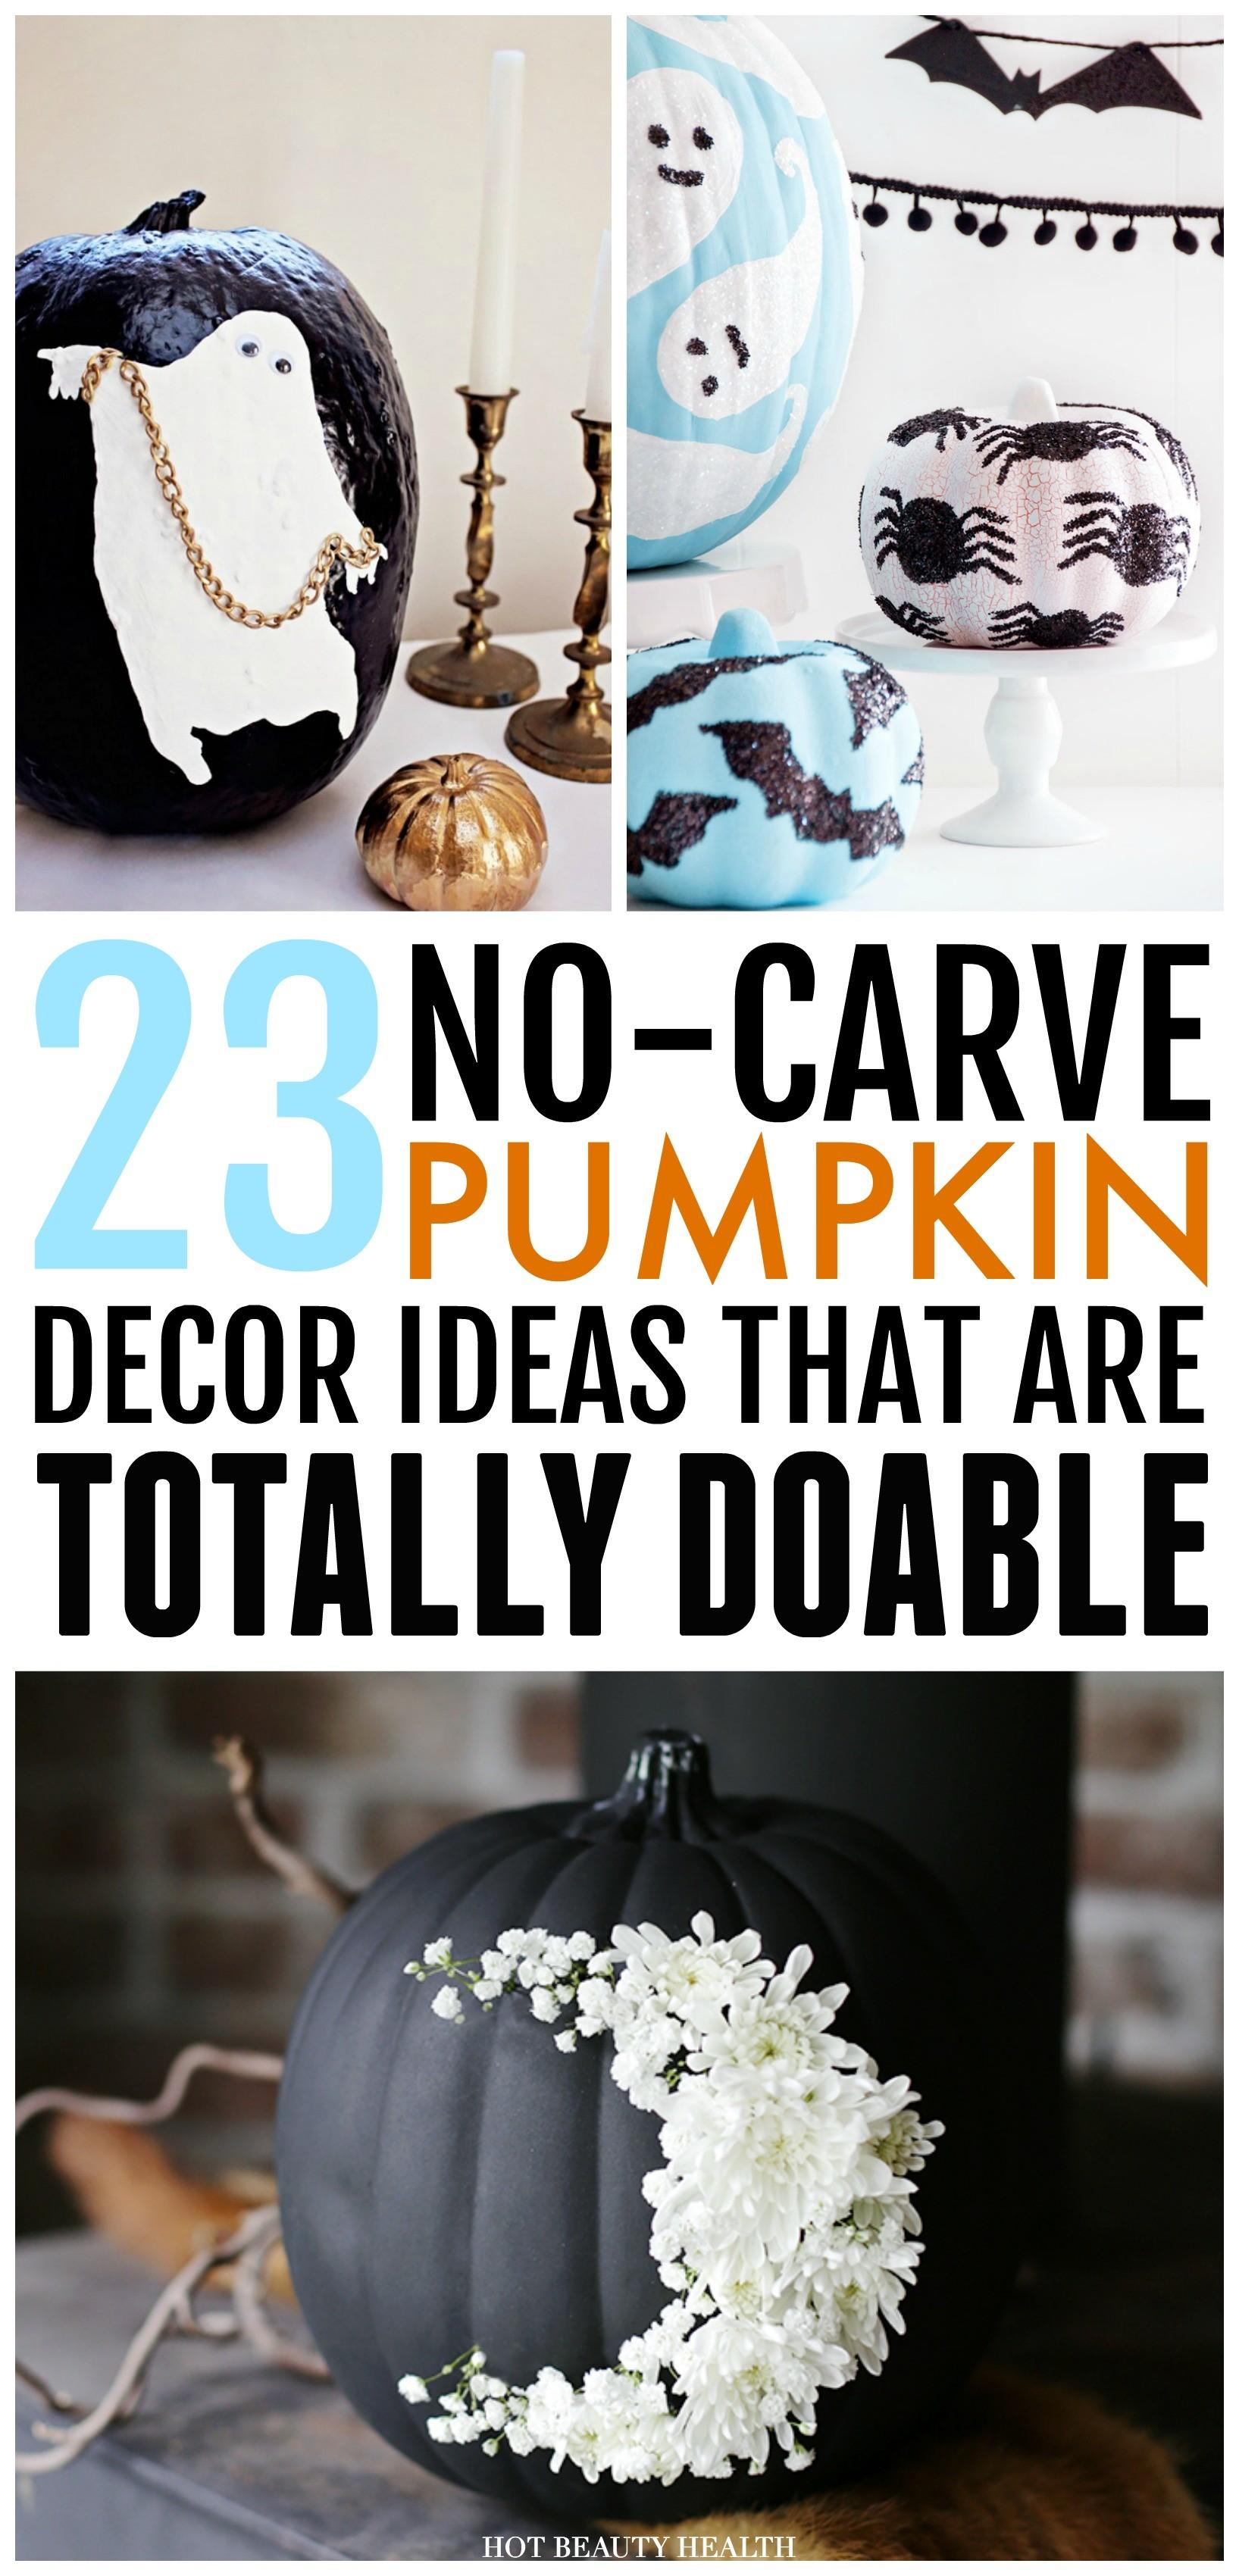 Carve Pumpkin Decorating Ideas Totally